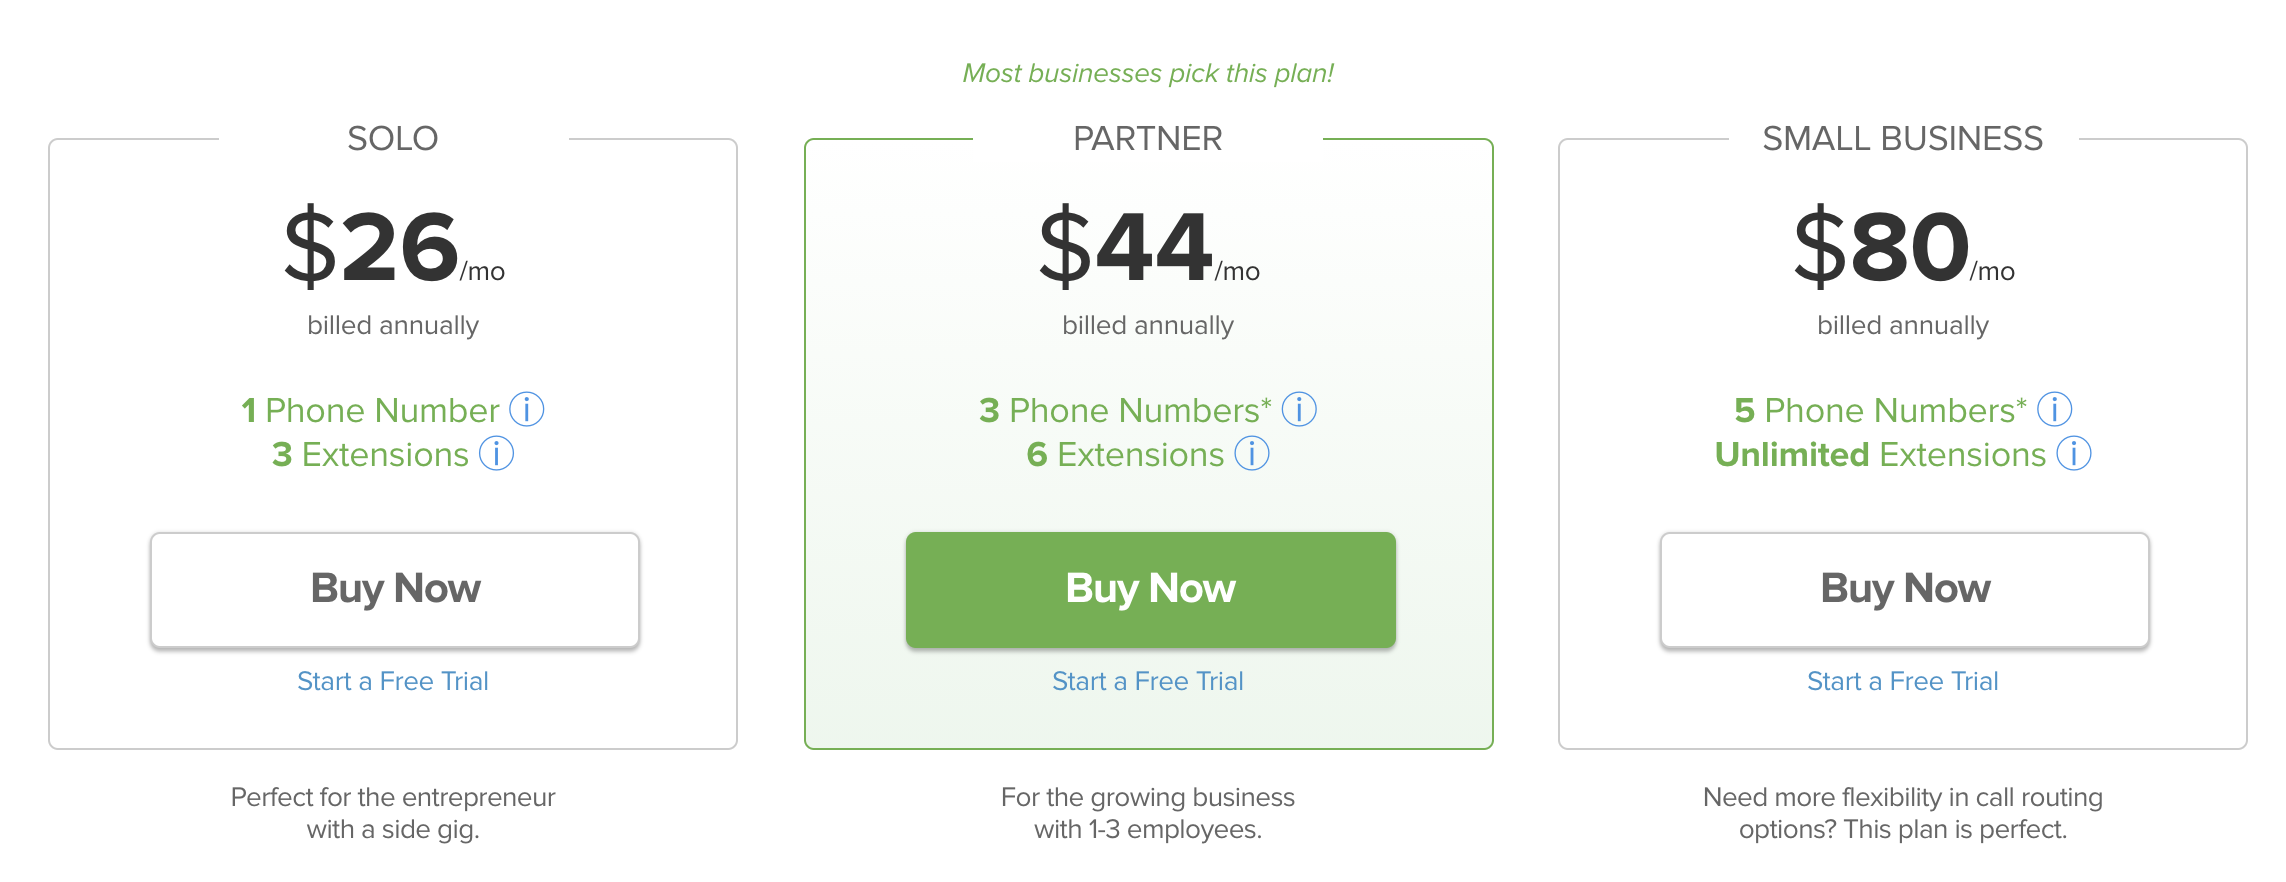 Grasshopper Pricing & Plans - Updated July 1st, 20210